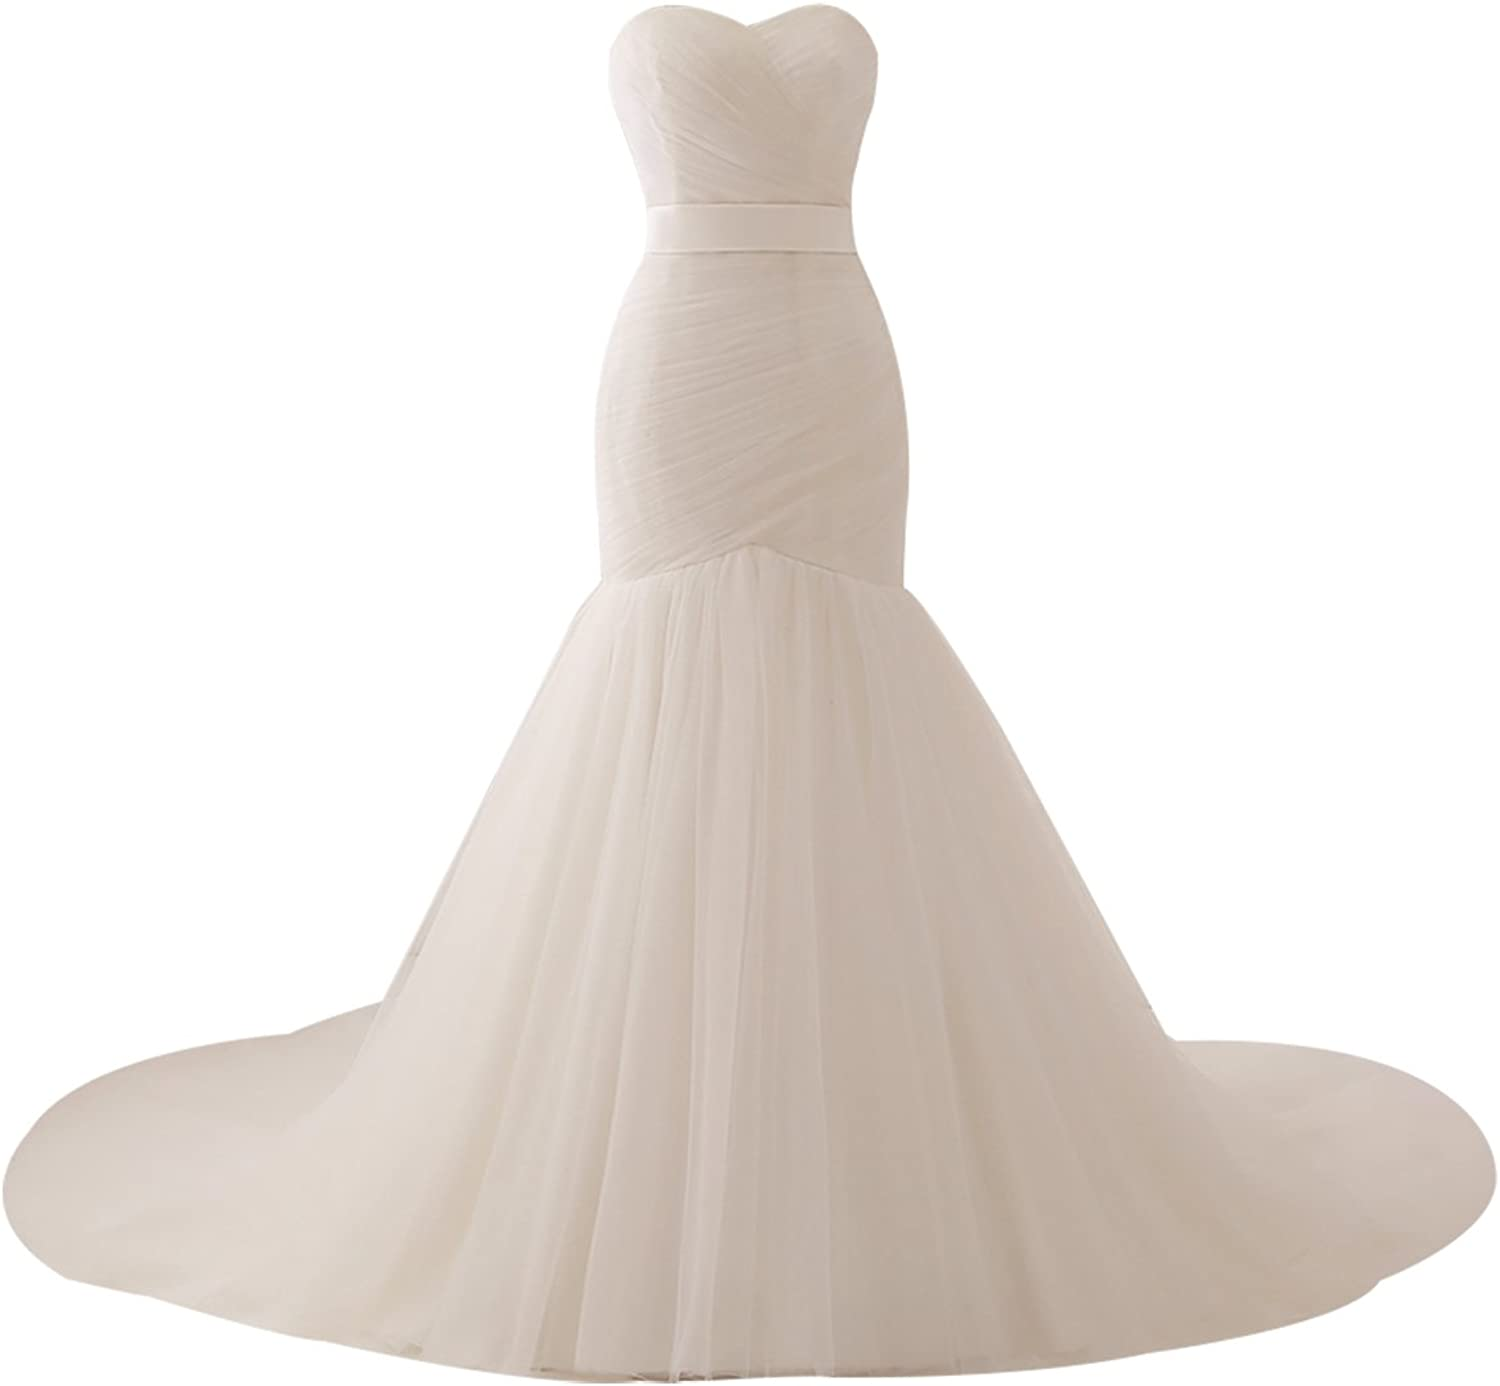 Epinkbridal Sweetheart Mermaid Wedding Dress Gowns for Bride Women's Bridal Gowns